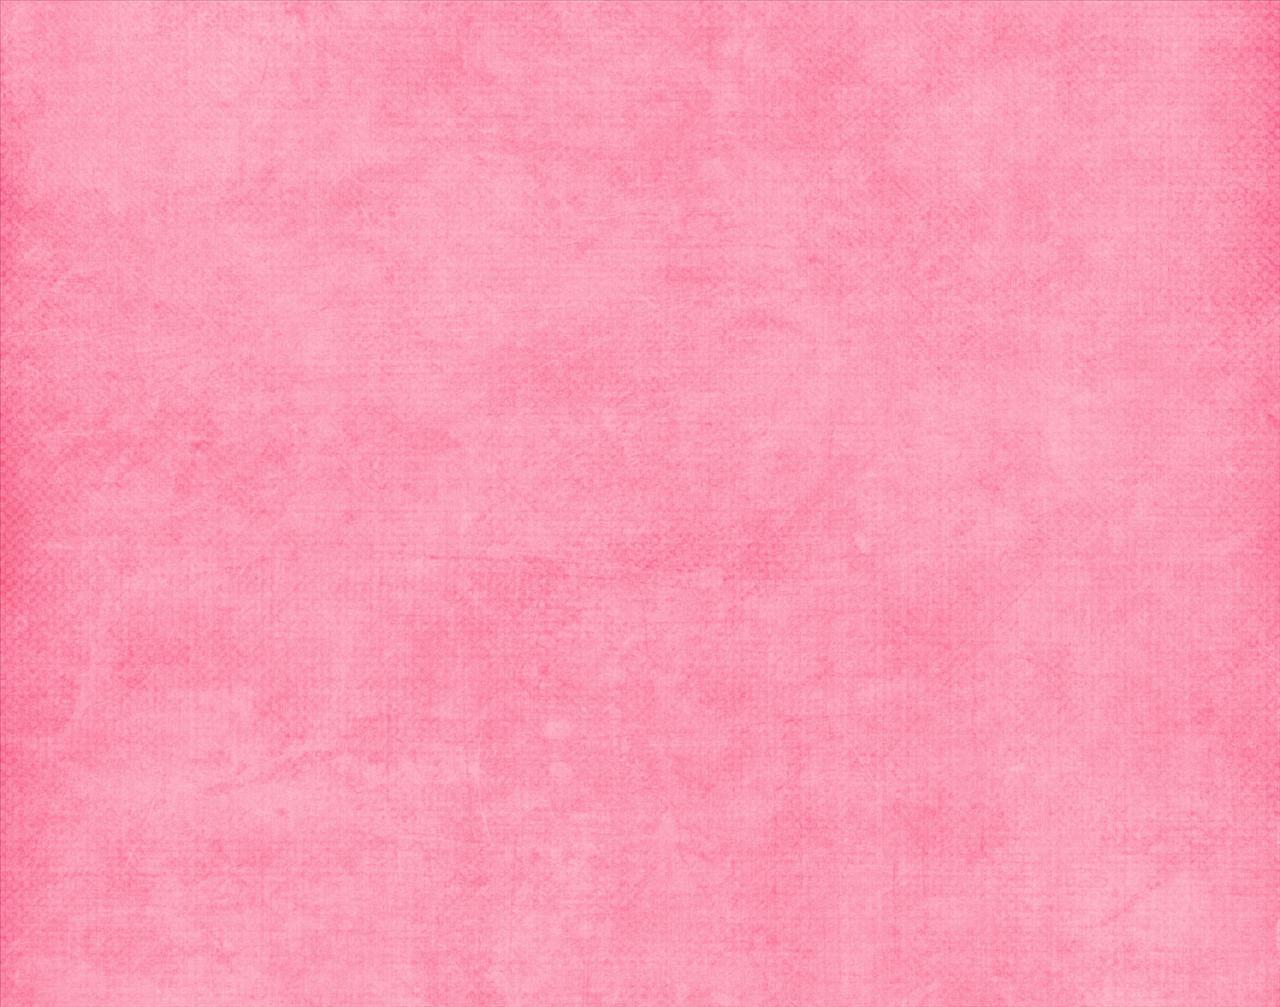 Cute Baby Princess Wallpapers Pink Color Backgrounds Wallpaper Cave